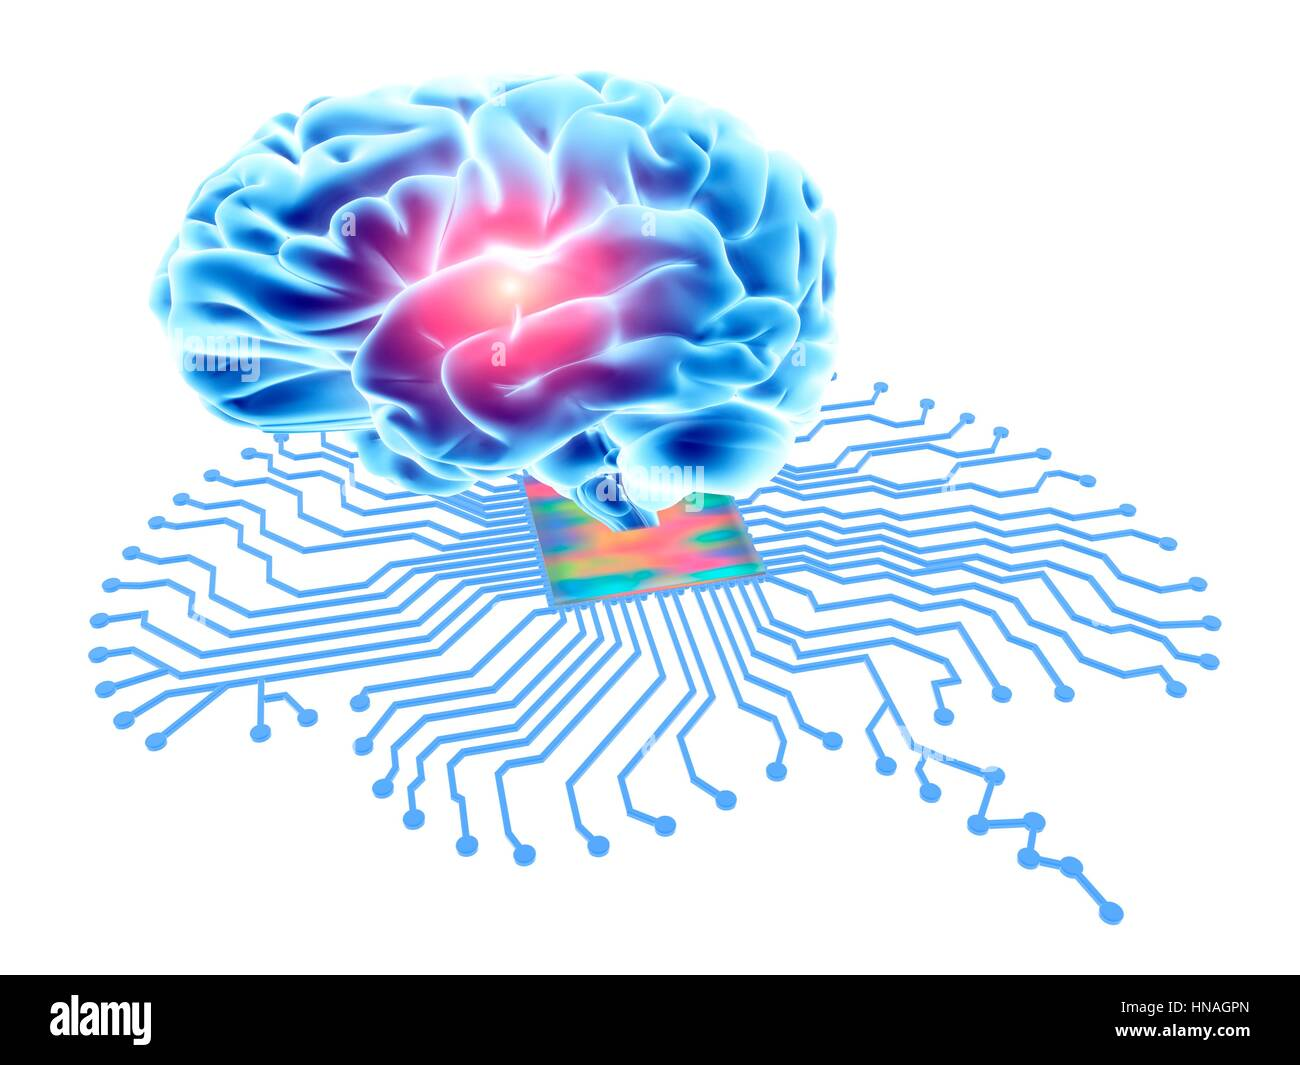 Printed Circuit Board Cut Out Stock Images Pictures Alamy Is The Central Pcb In Many Modern Computers Brain Shaped With Processor And Human Conceptual Computer Artwork Depicting